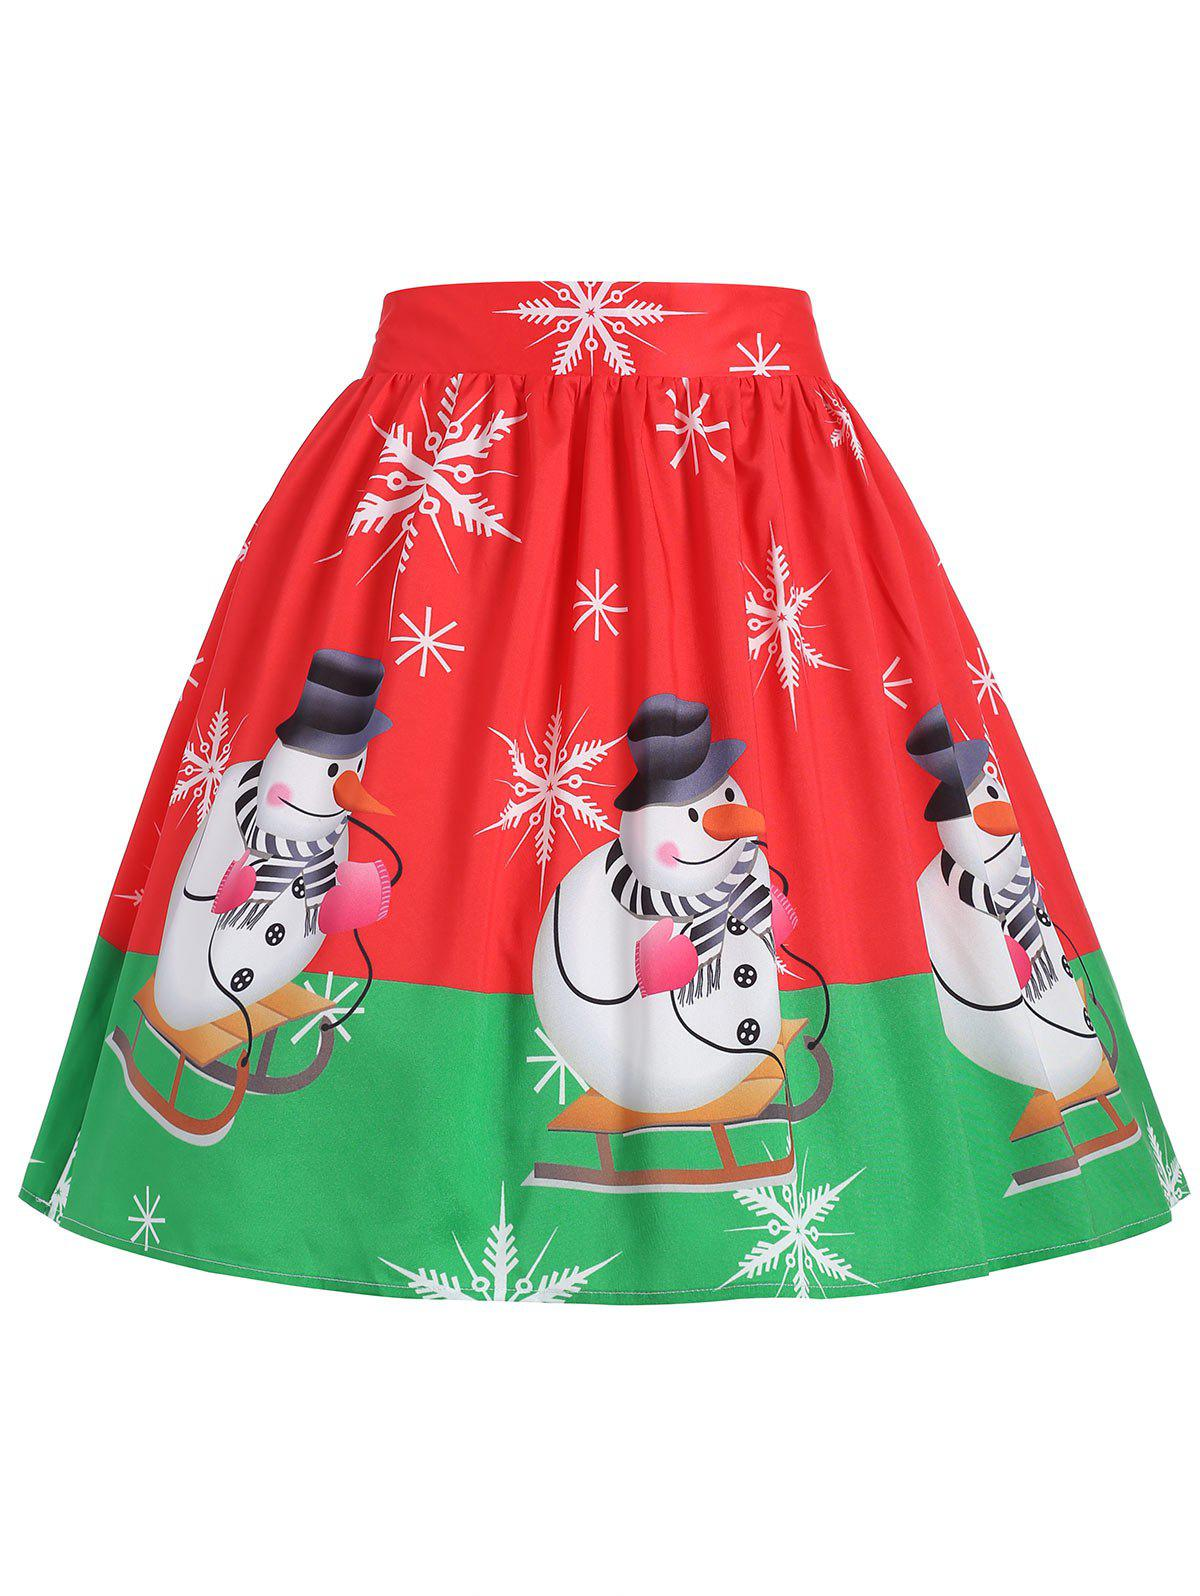 Christmas Snowflake Snowman Plus Size SkirtWOMEN<br><br>Size: 2XL; Color: RED; Material: Polyester; Length: Mini; Silhouette: A-Line; Pattern Type: Print; Season: Fall,Winter; With Belt: No; Weight: 0.1850kg; Package Contents: 1 x Skirt;